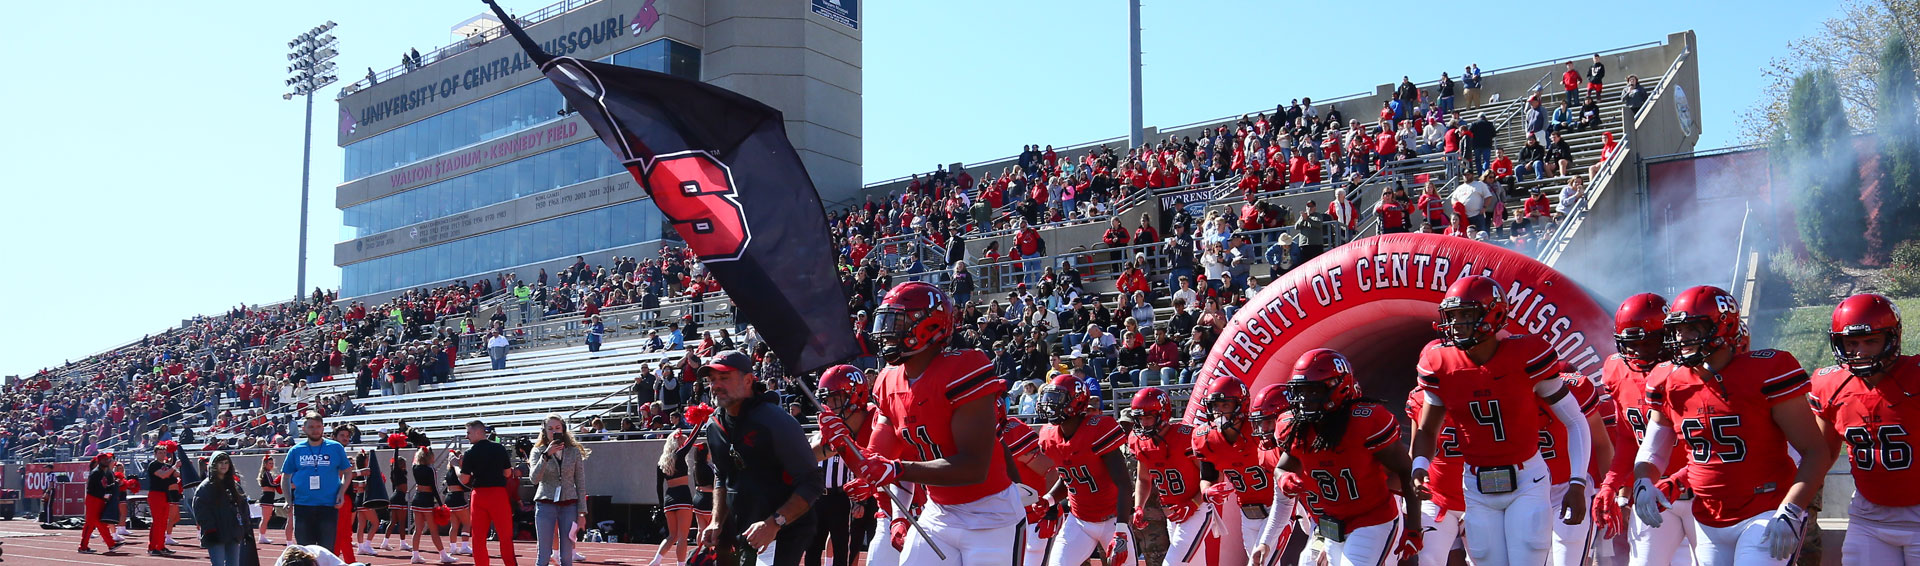 UCM football players taking the field before a game